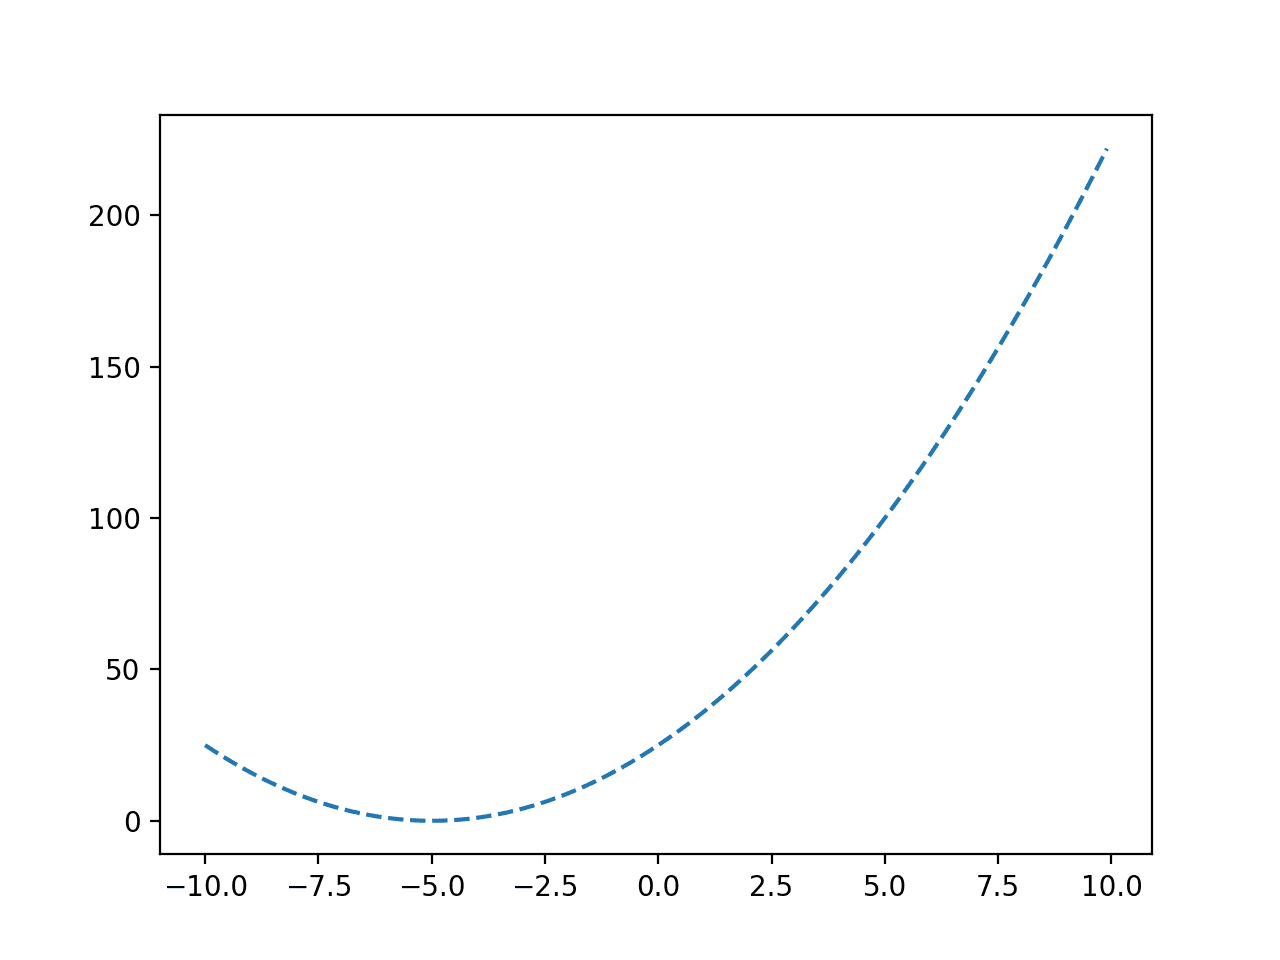 Line Plot of a Convex Objective Function